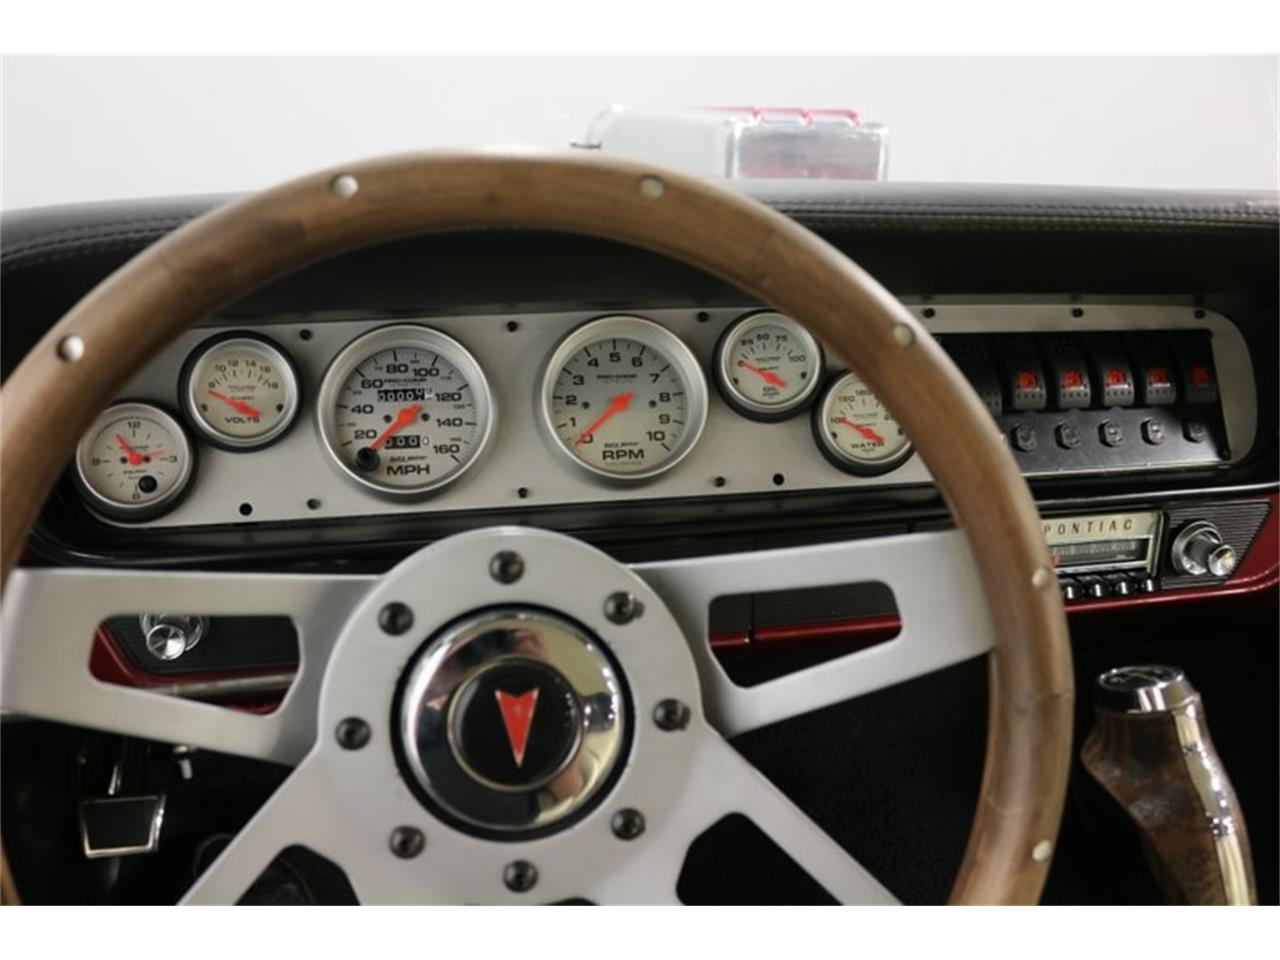 Large Picture of 1965 Pontiac LeMans located in Ft Worth Texas - $37,995.00 - Q507